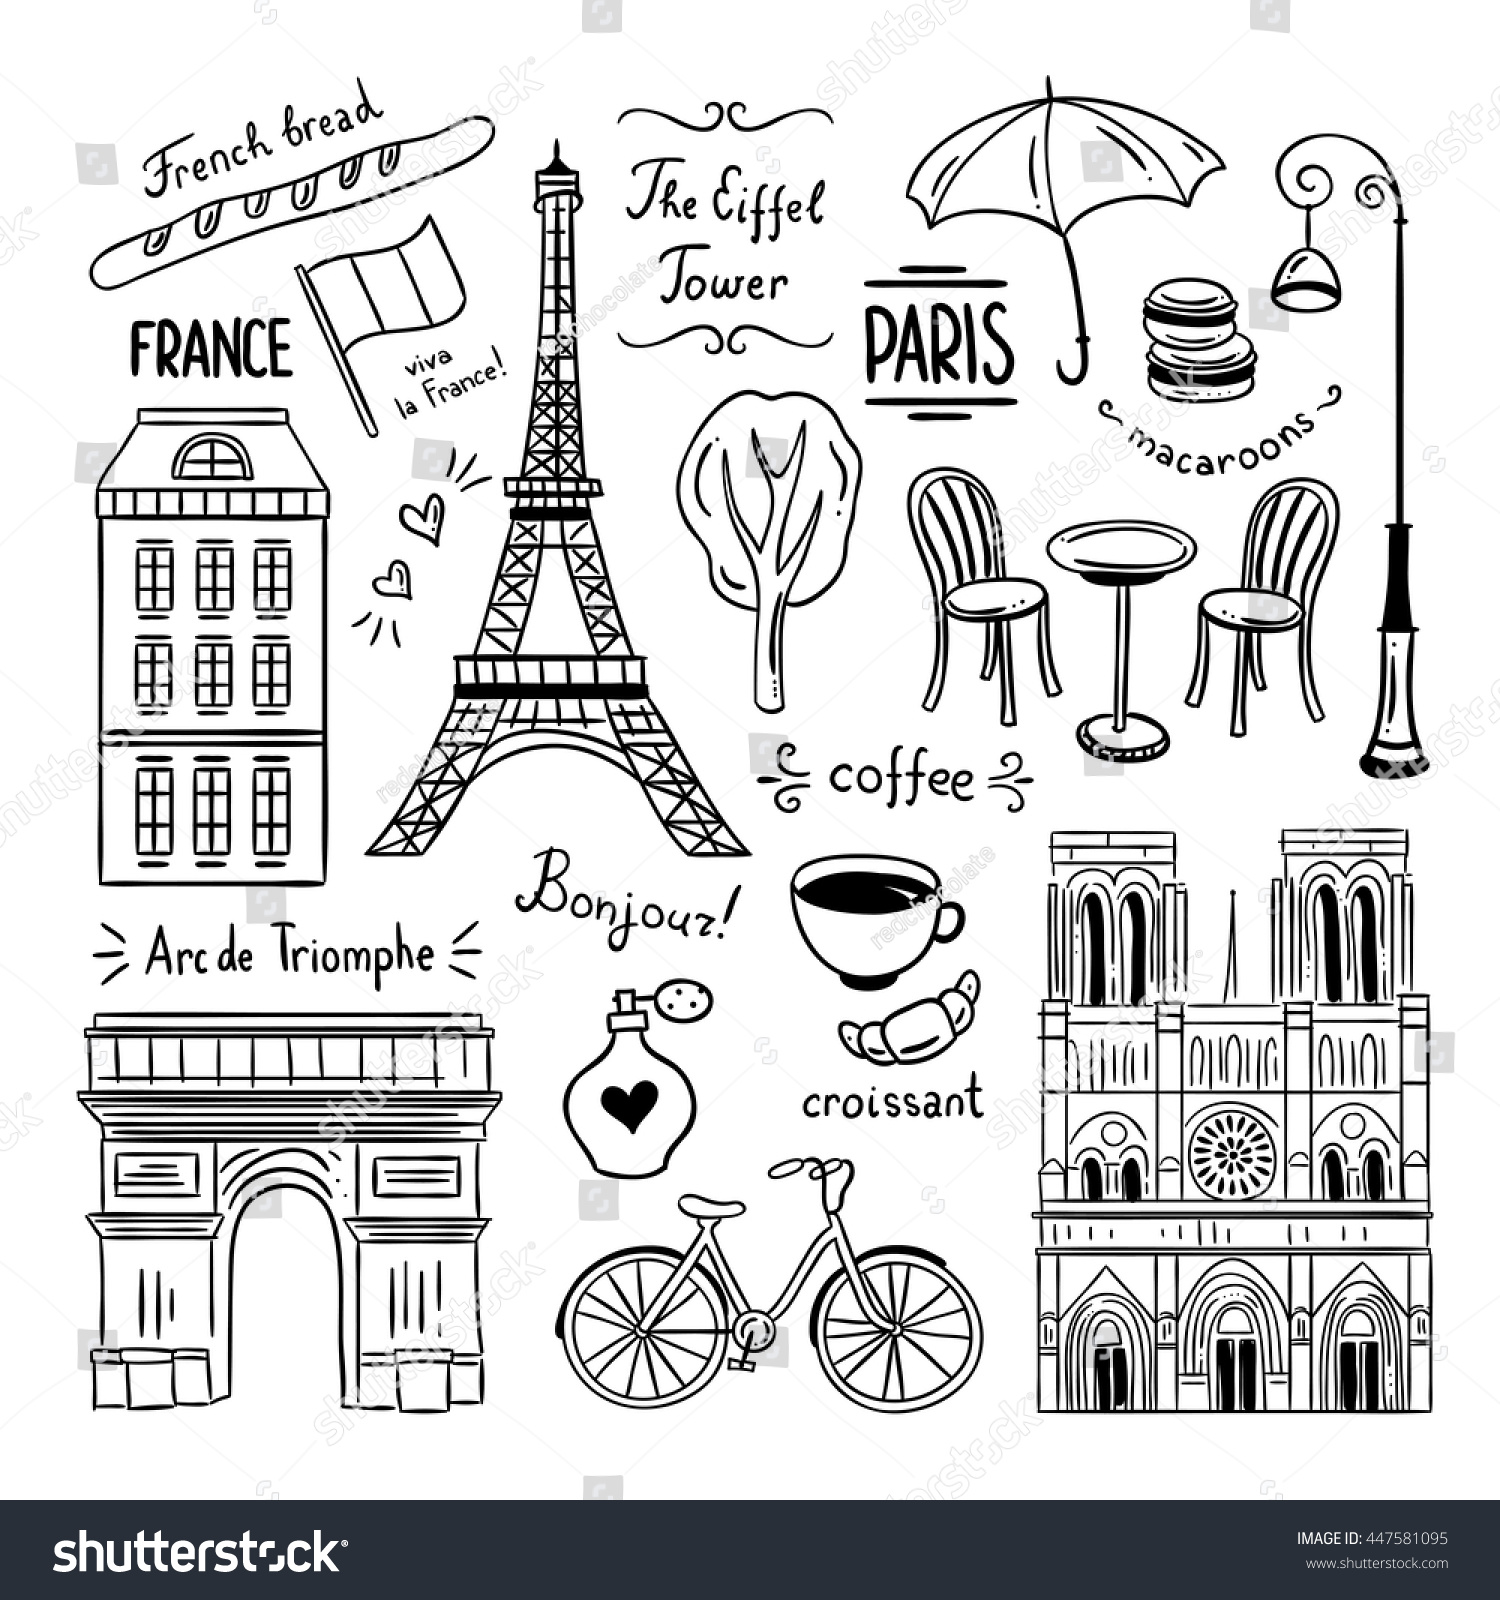 Hand Drawn Paris France Clipart Doodles Stock Vector ...